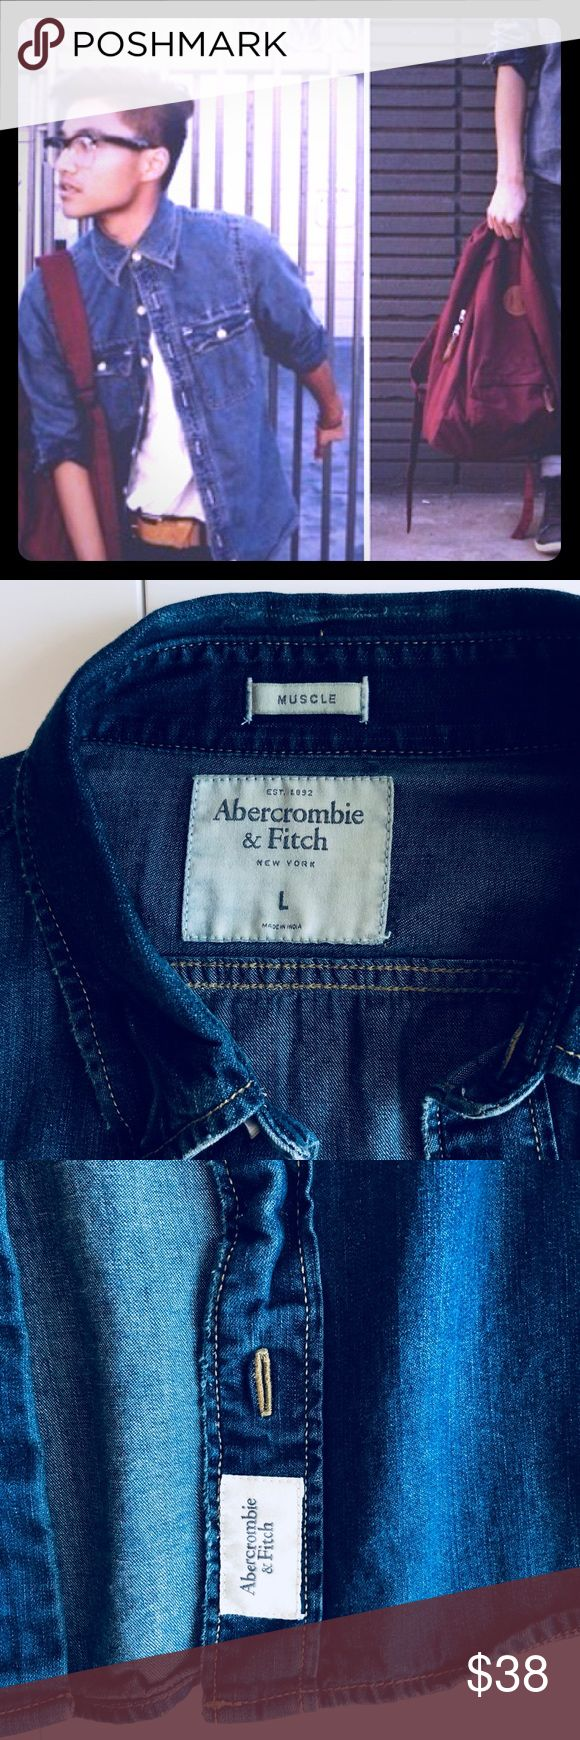 New Abercrombie and Fitch jean Jacket Brand new without price tags Abercrombie and Fitch Jean jacket in size large. Abercrombie & Fitch Jackets & Coats